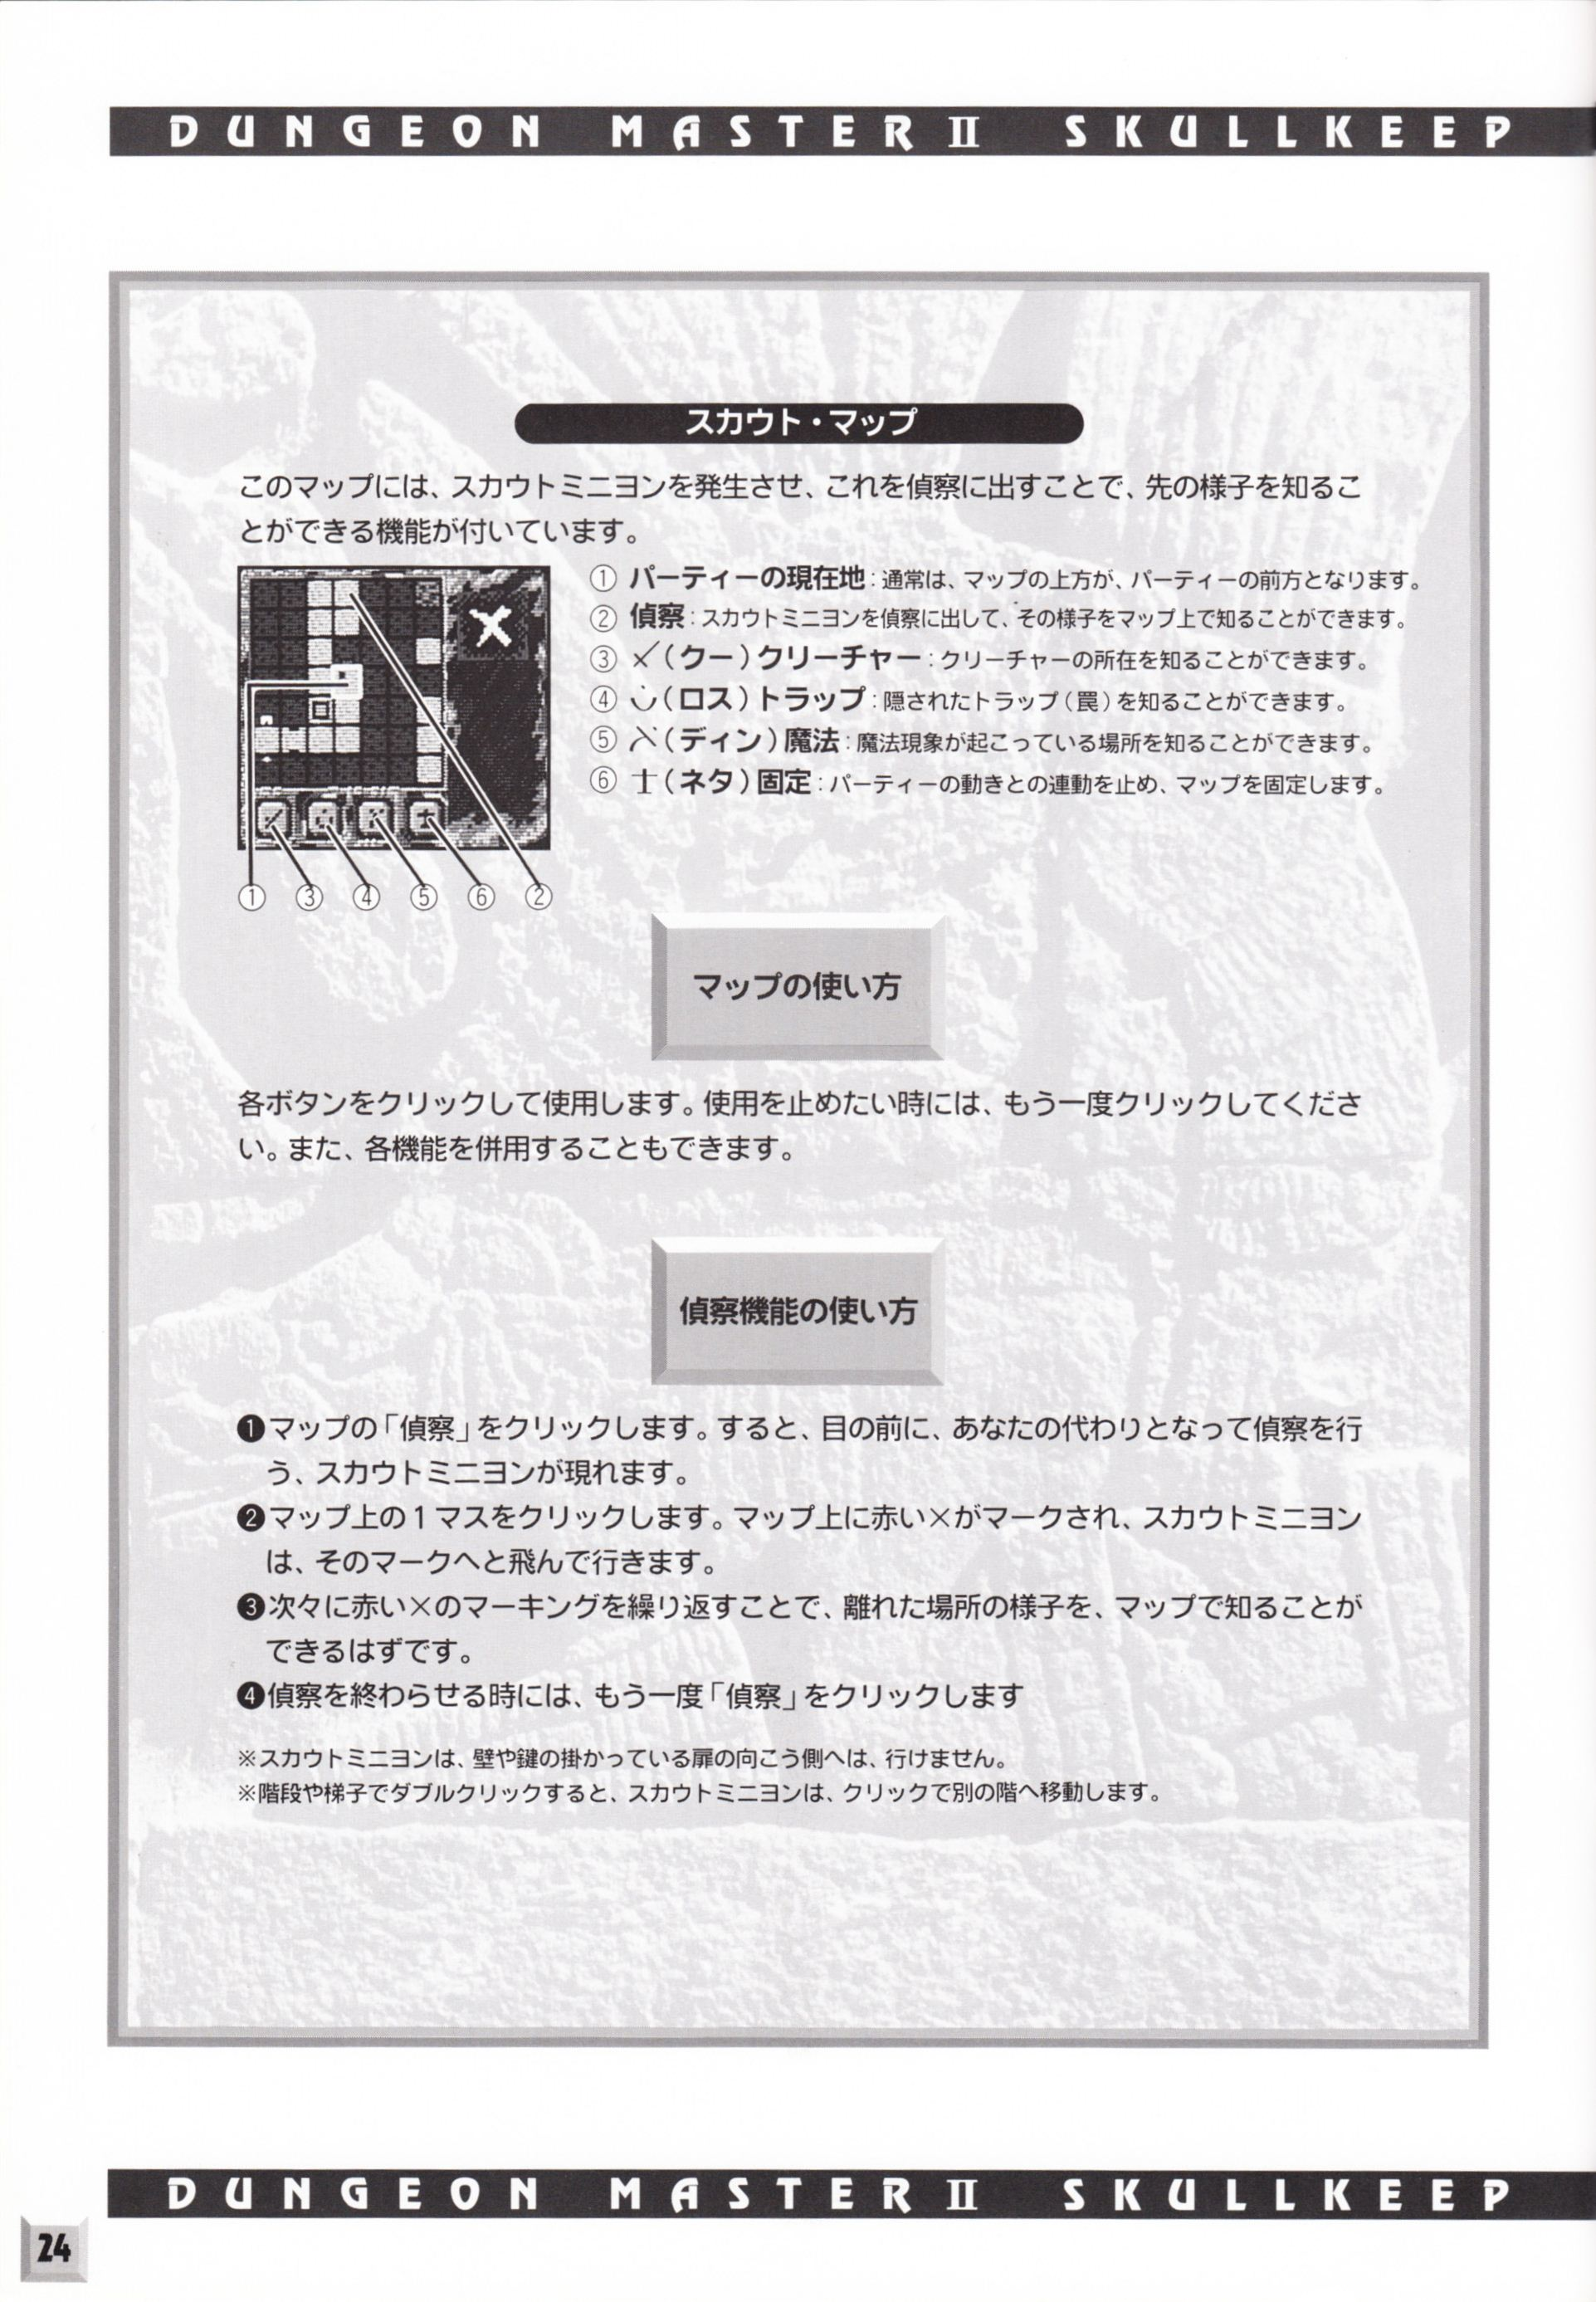 Game - Dungeon Master II - JP - PC-9801 - 3.5-inch - An Operation Manual - Page 026 - Scan